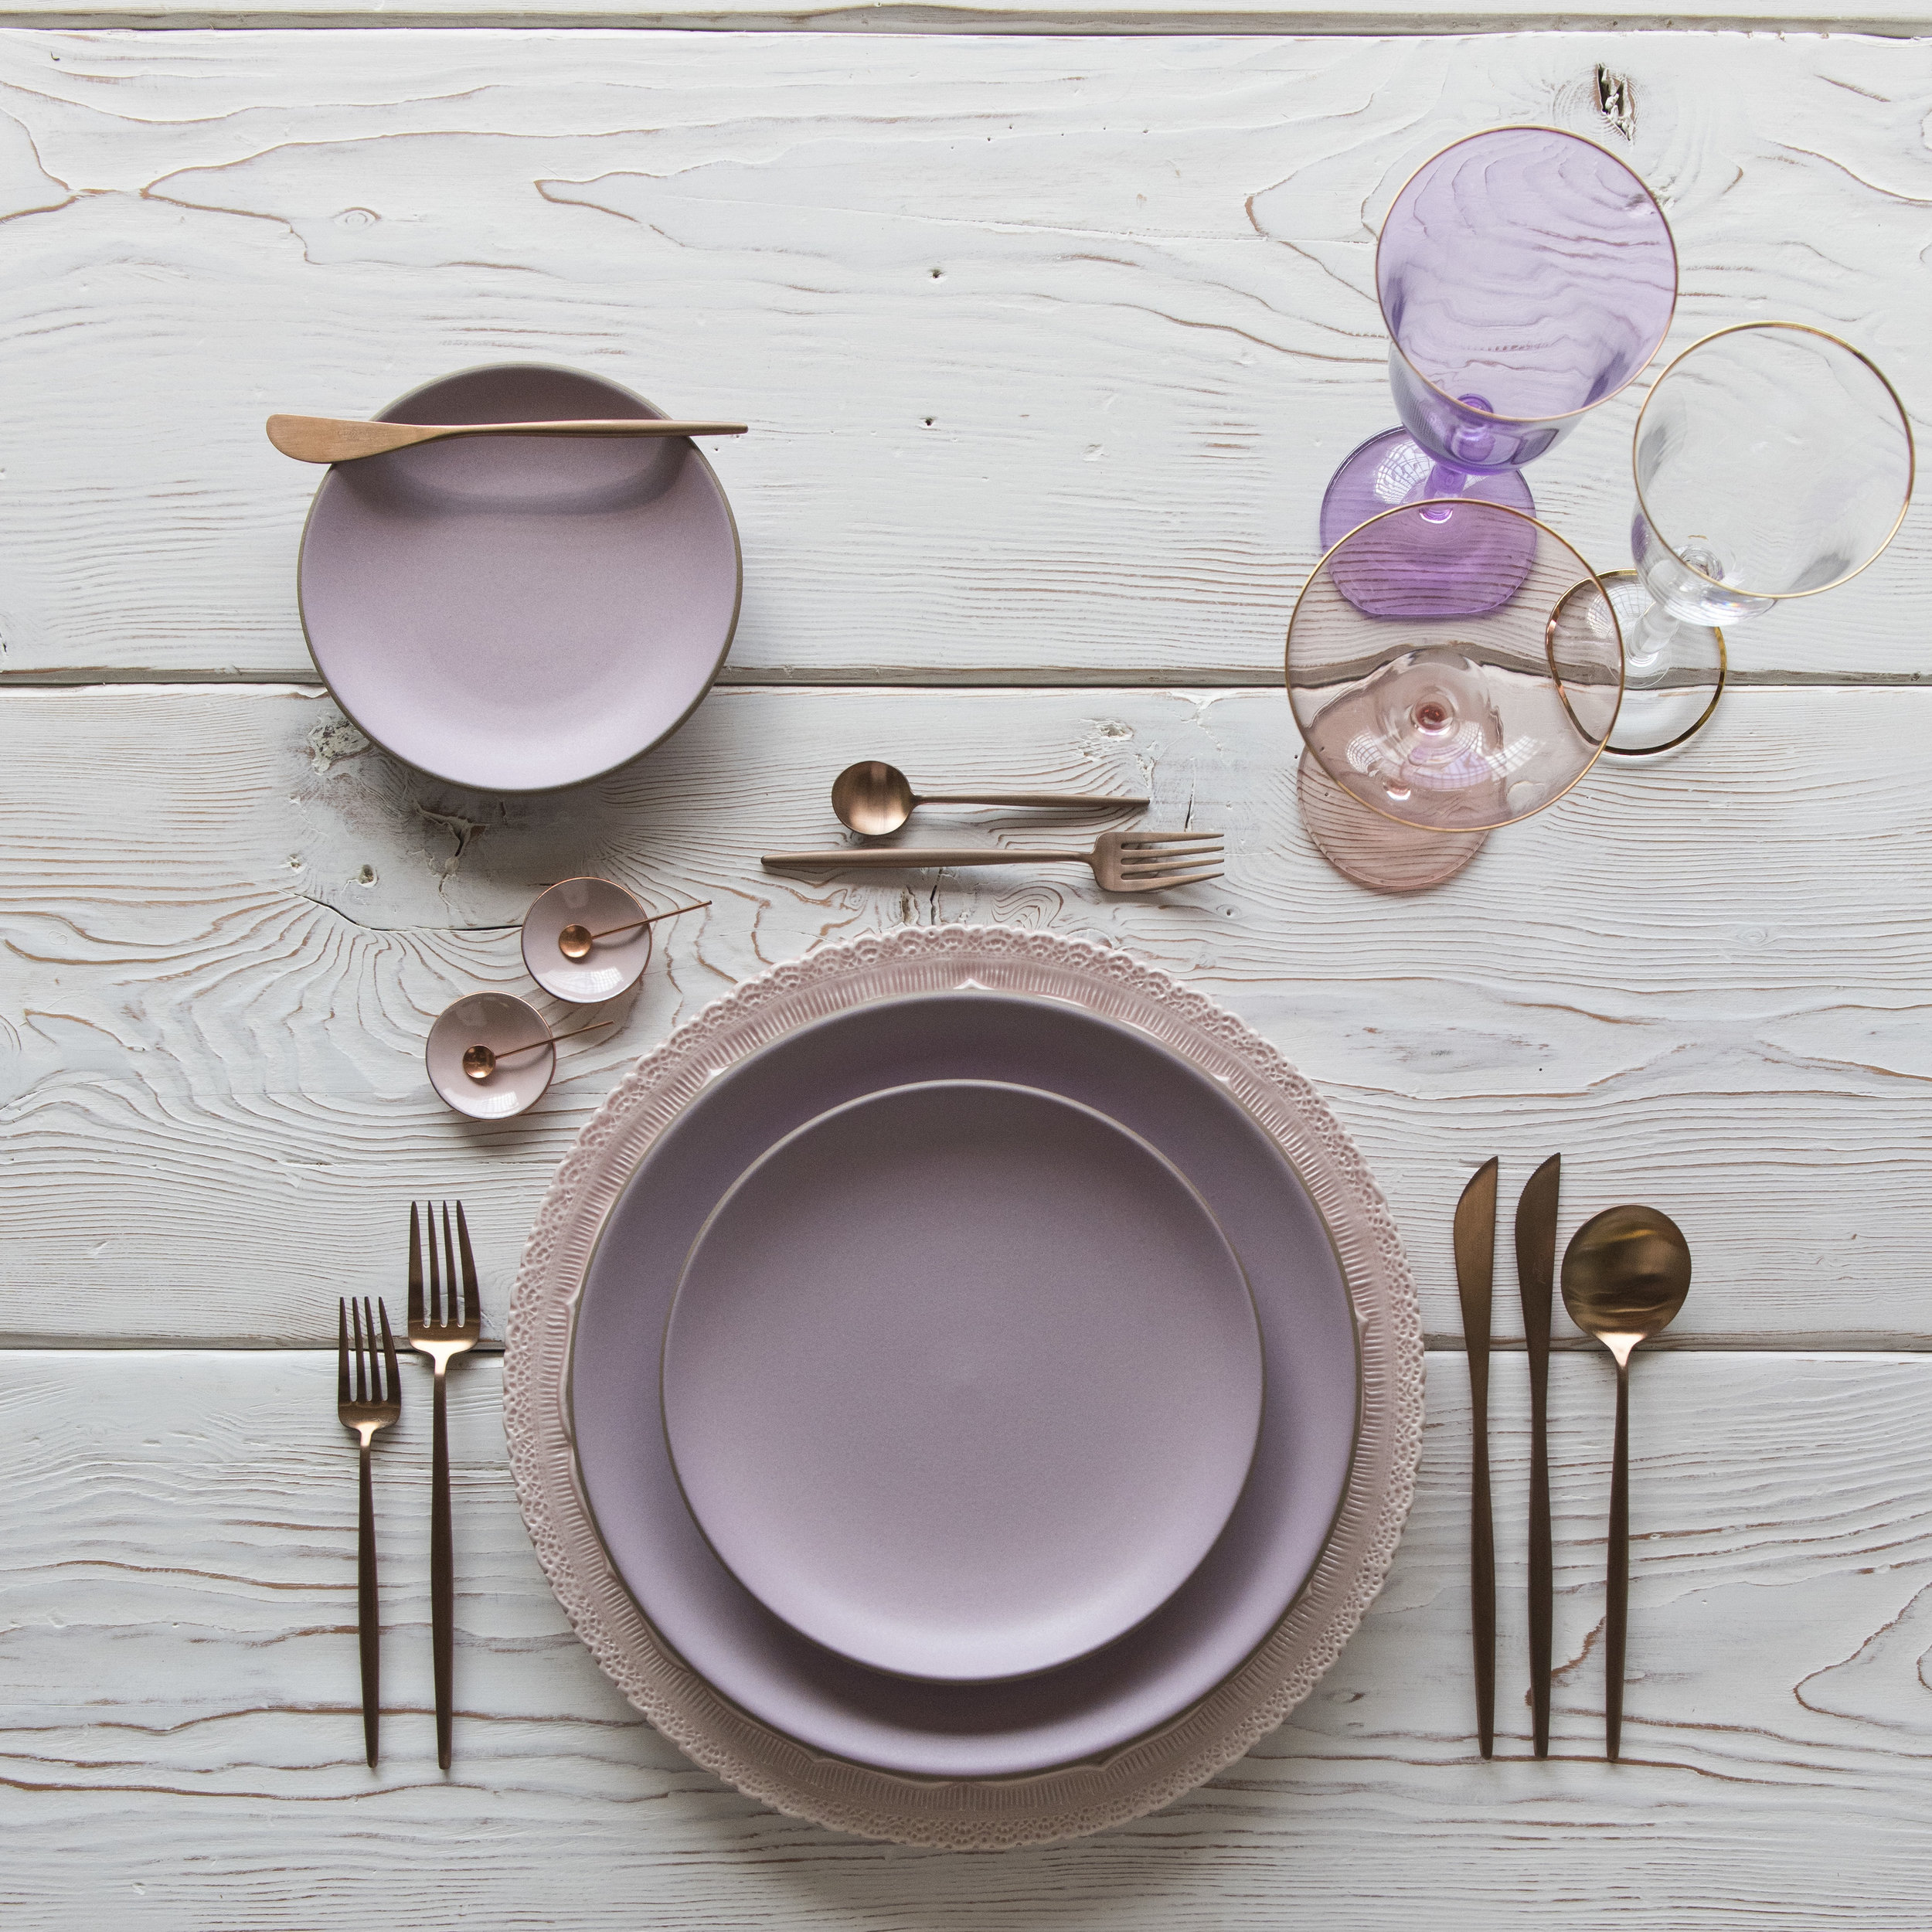 RENT: Lace Chargers in Blush + Custom Heath Ceramics in Wildflower + Moon Flatware in Brushed Rose Gold + Chloe 24k Gold Rimmed Stemware + Chloe 24k Gold Rimmed Goblet in Lilac + Bella 24k Gold Rimmed Stemware + Pink Enamel Salt Cellars + Tiny Copper Spoons   SHOP: Moon Flatware in Brushed Rose Gold + Chloe 24k Gold Rimmed Stemware + Bella 24k Gold Rimmed Stemware + Pink Enamel Salt Cellars + Tiny Copper Spoons